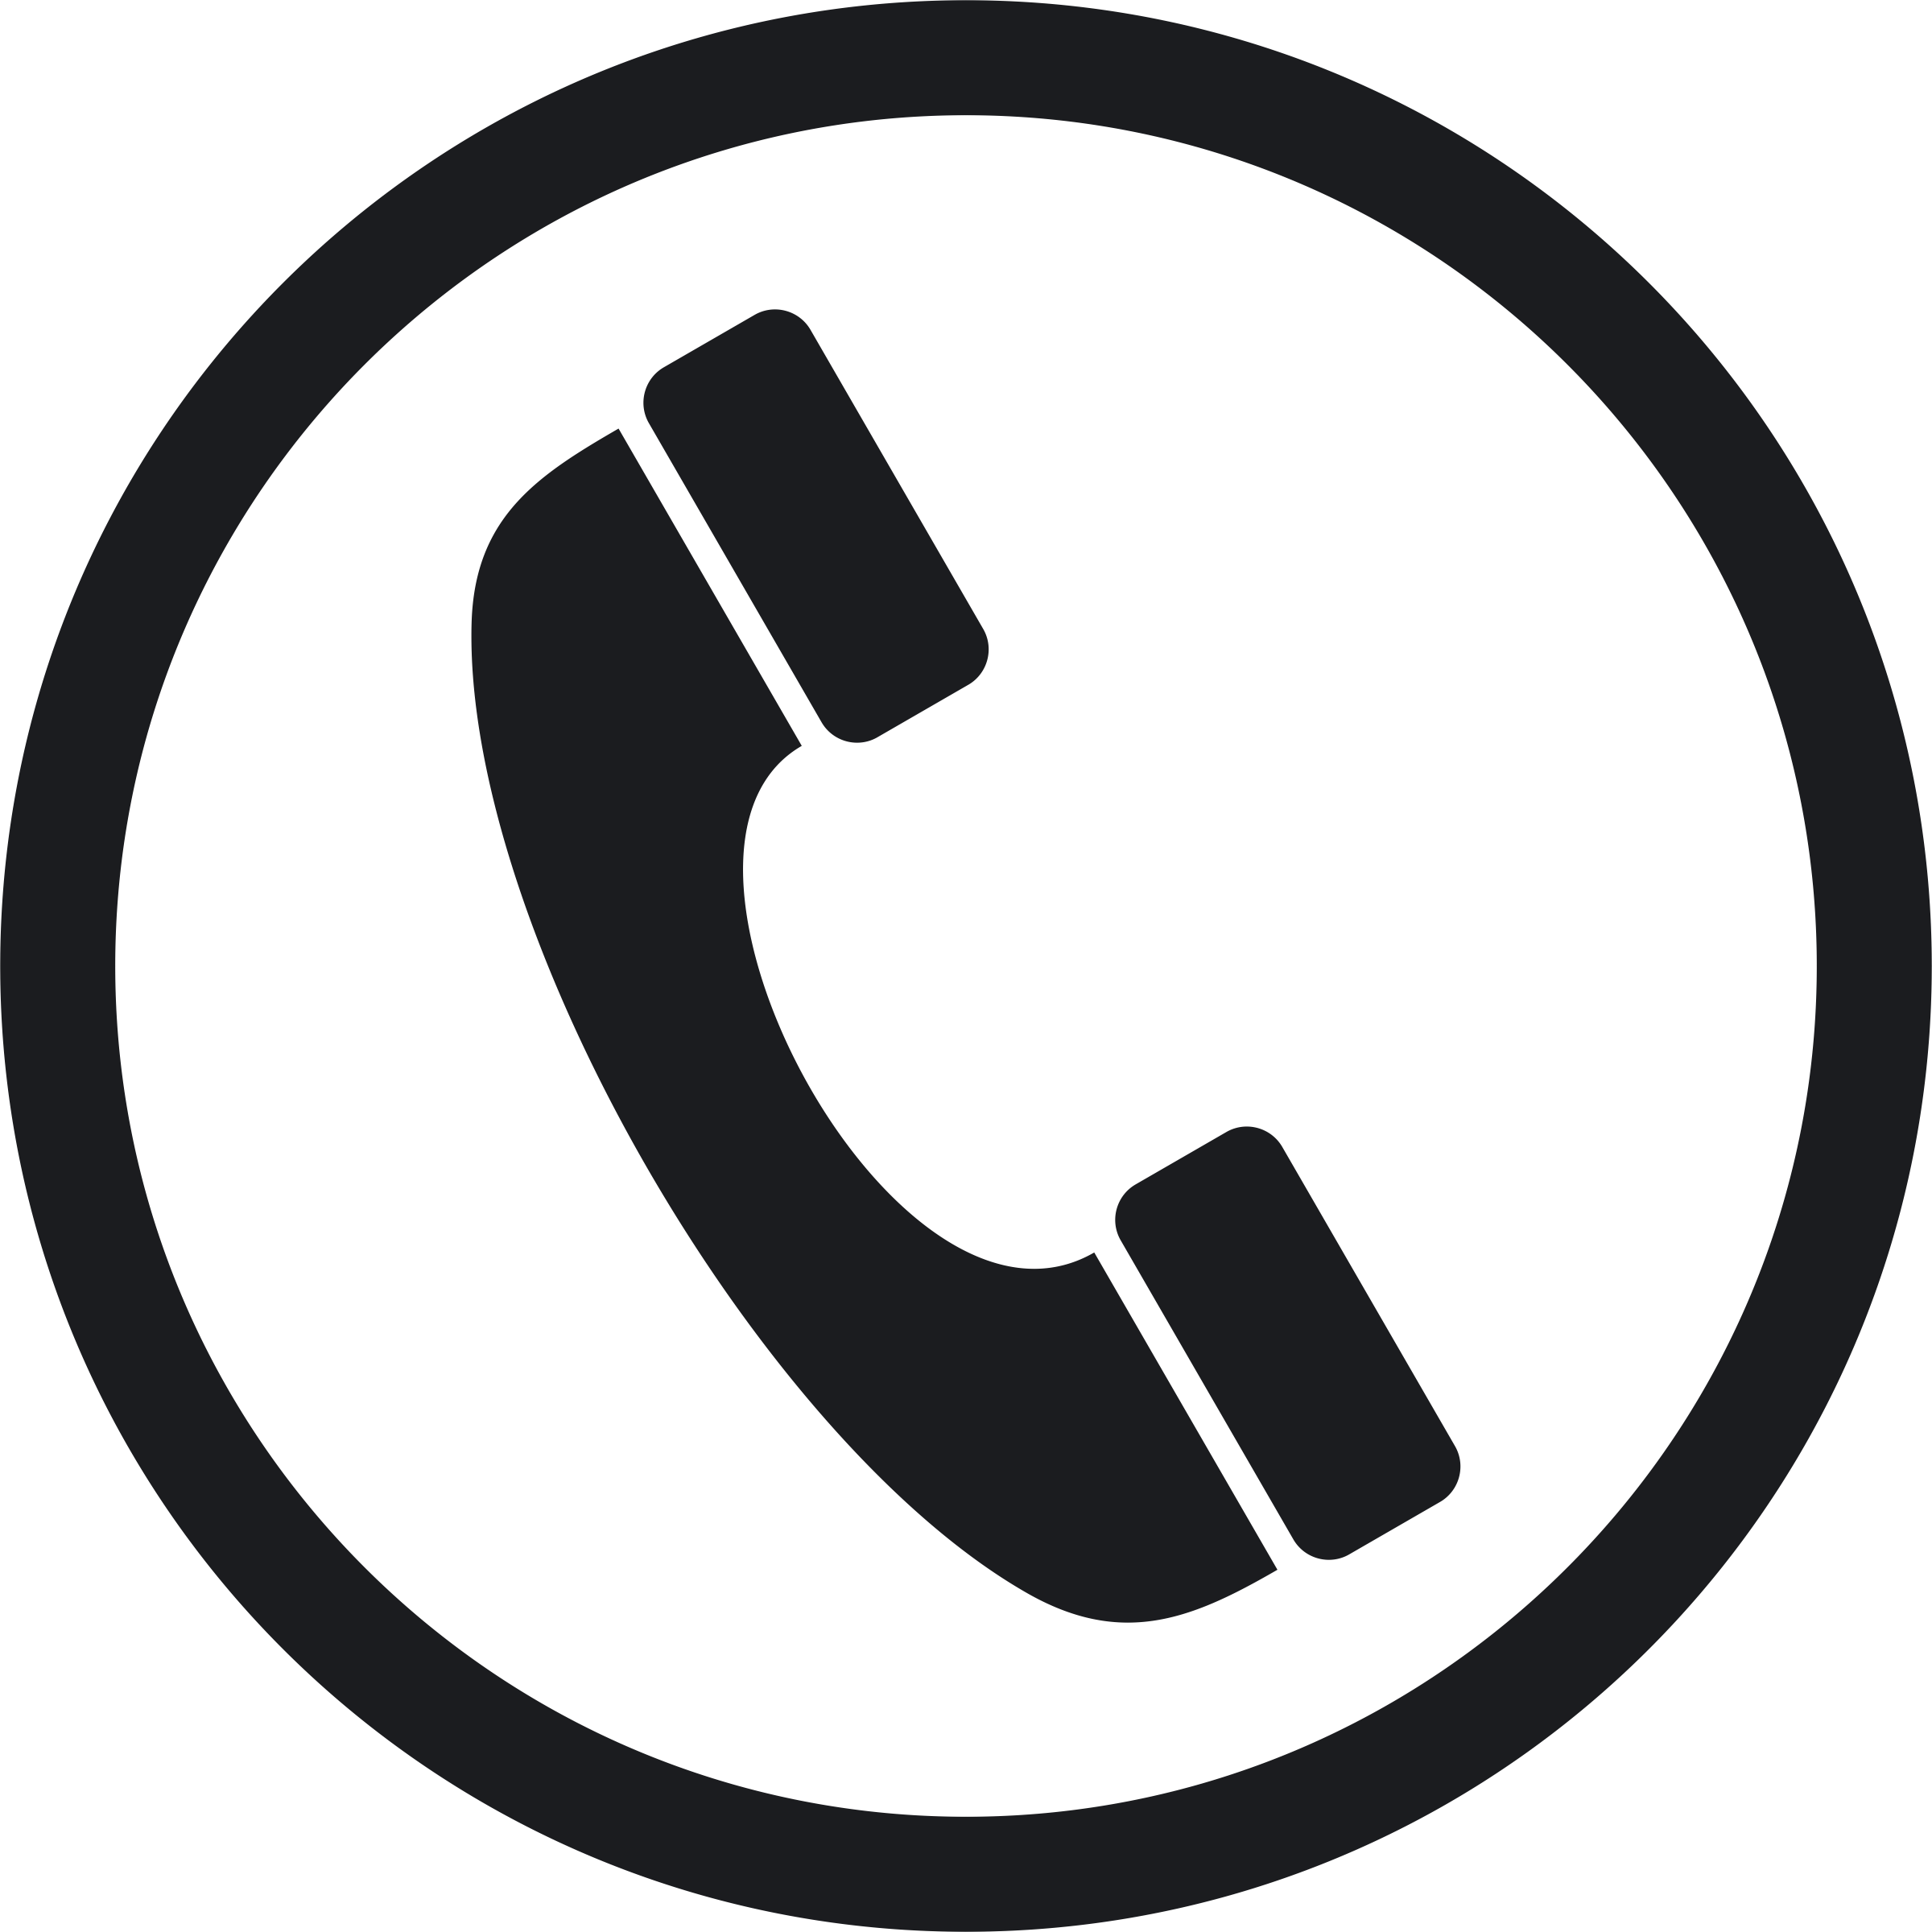 Clipart phone. Icon big image png